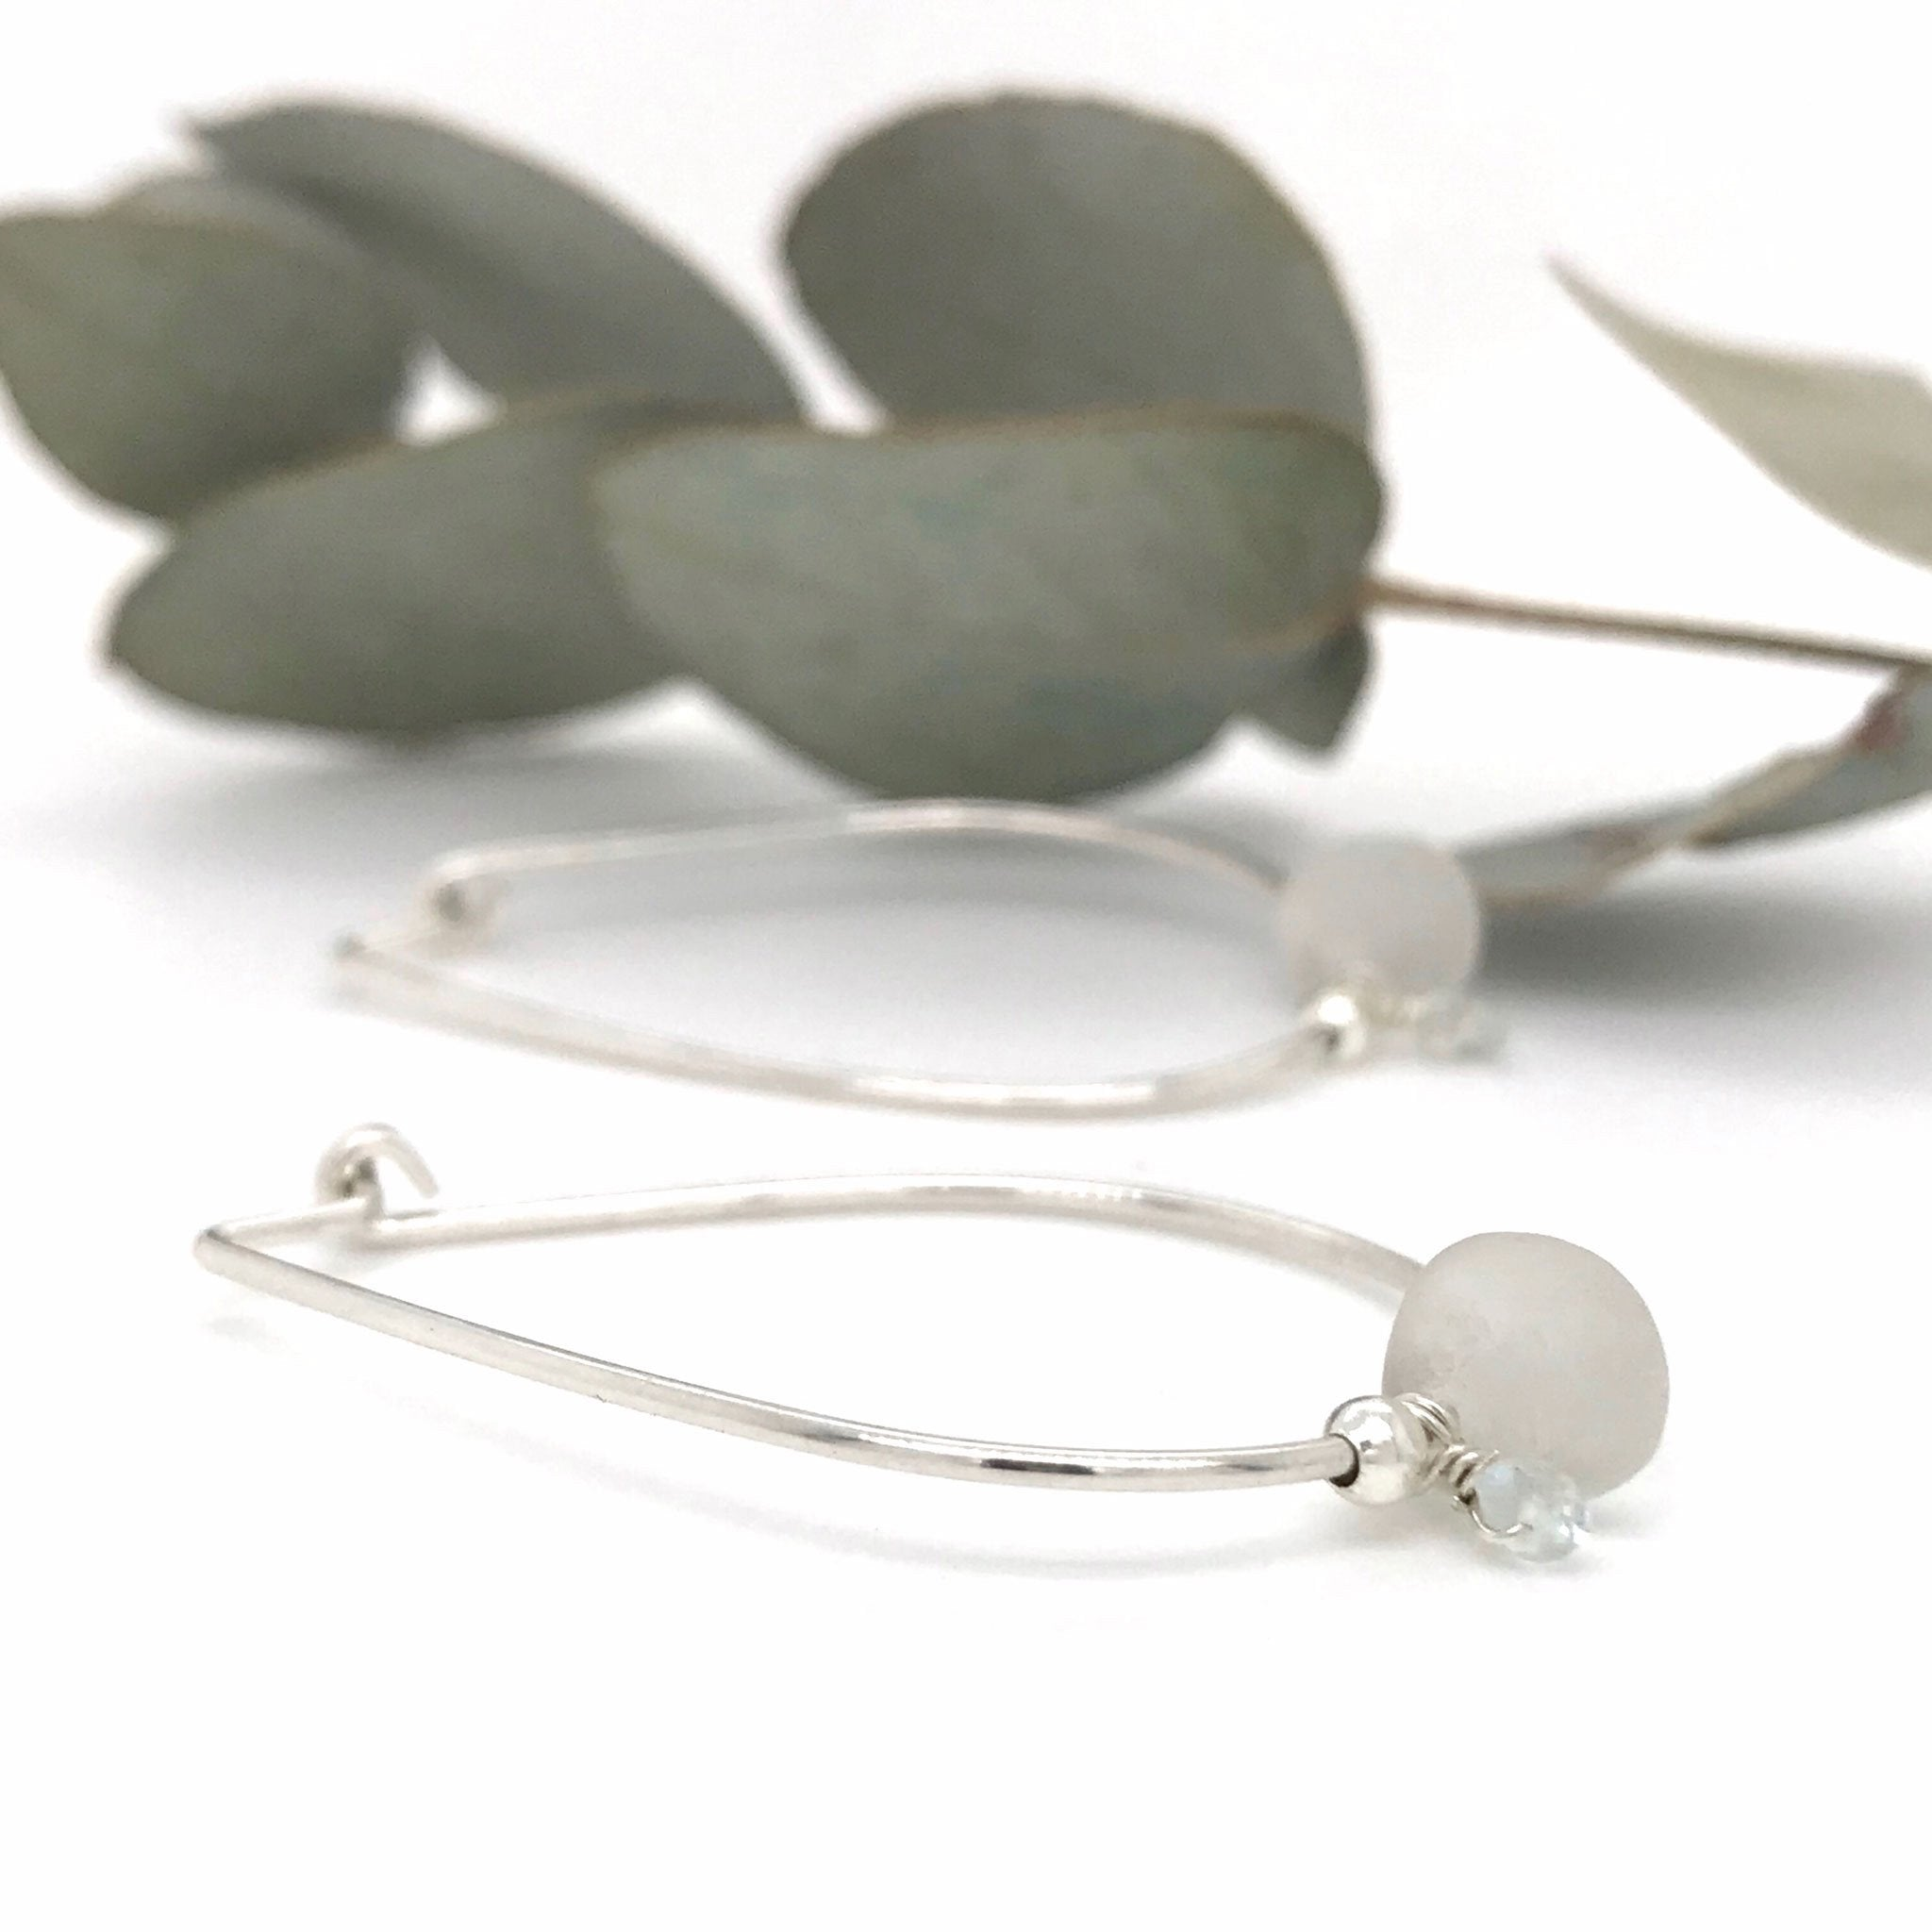 clear seaglass hoop earrings with aquamarines sterling silver kriket broadhurst jewellery